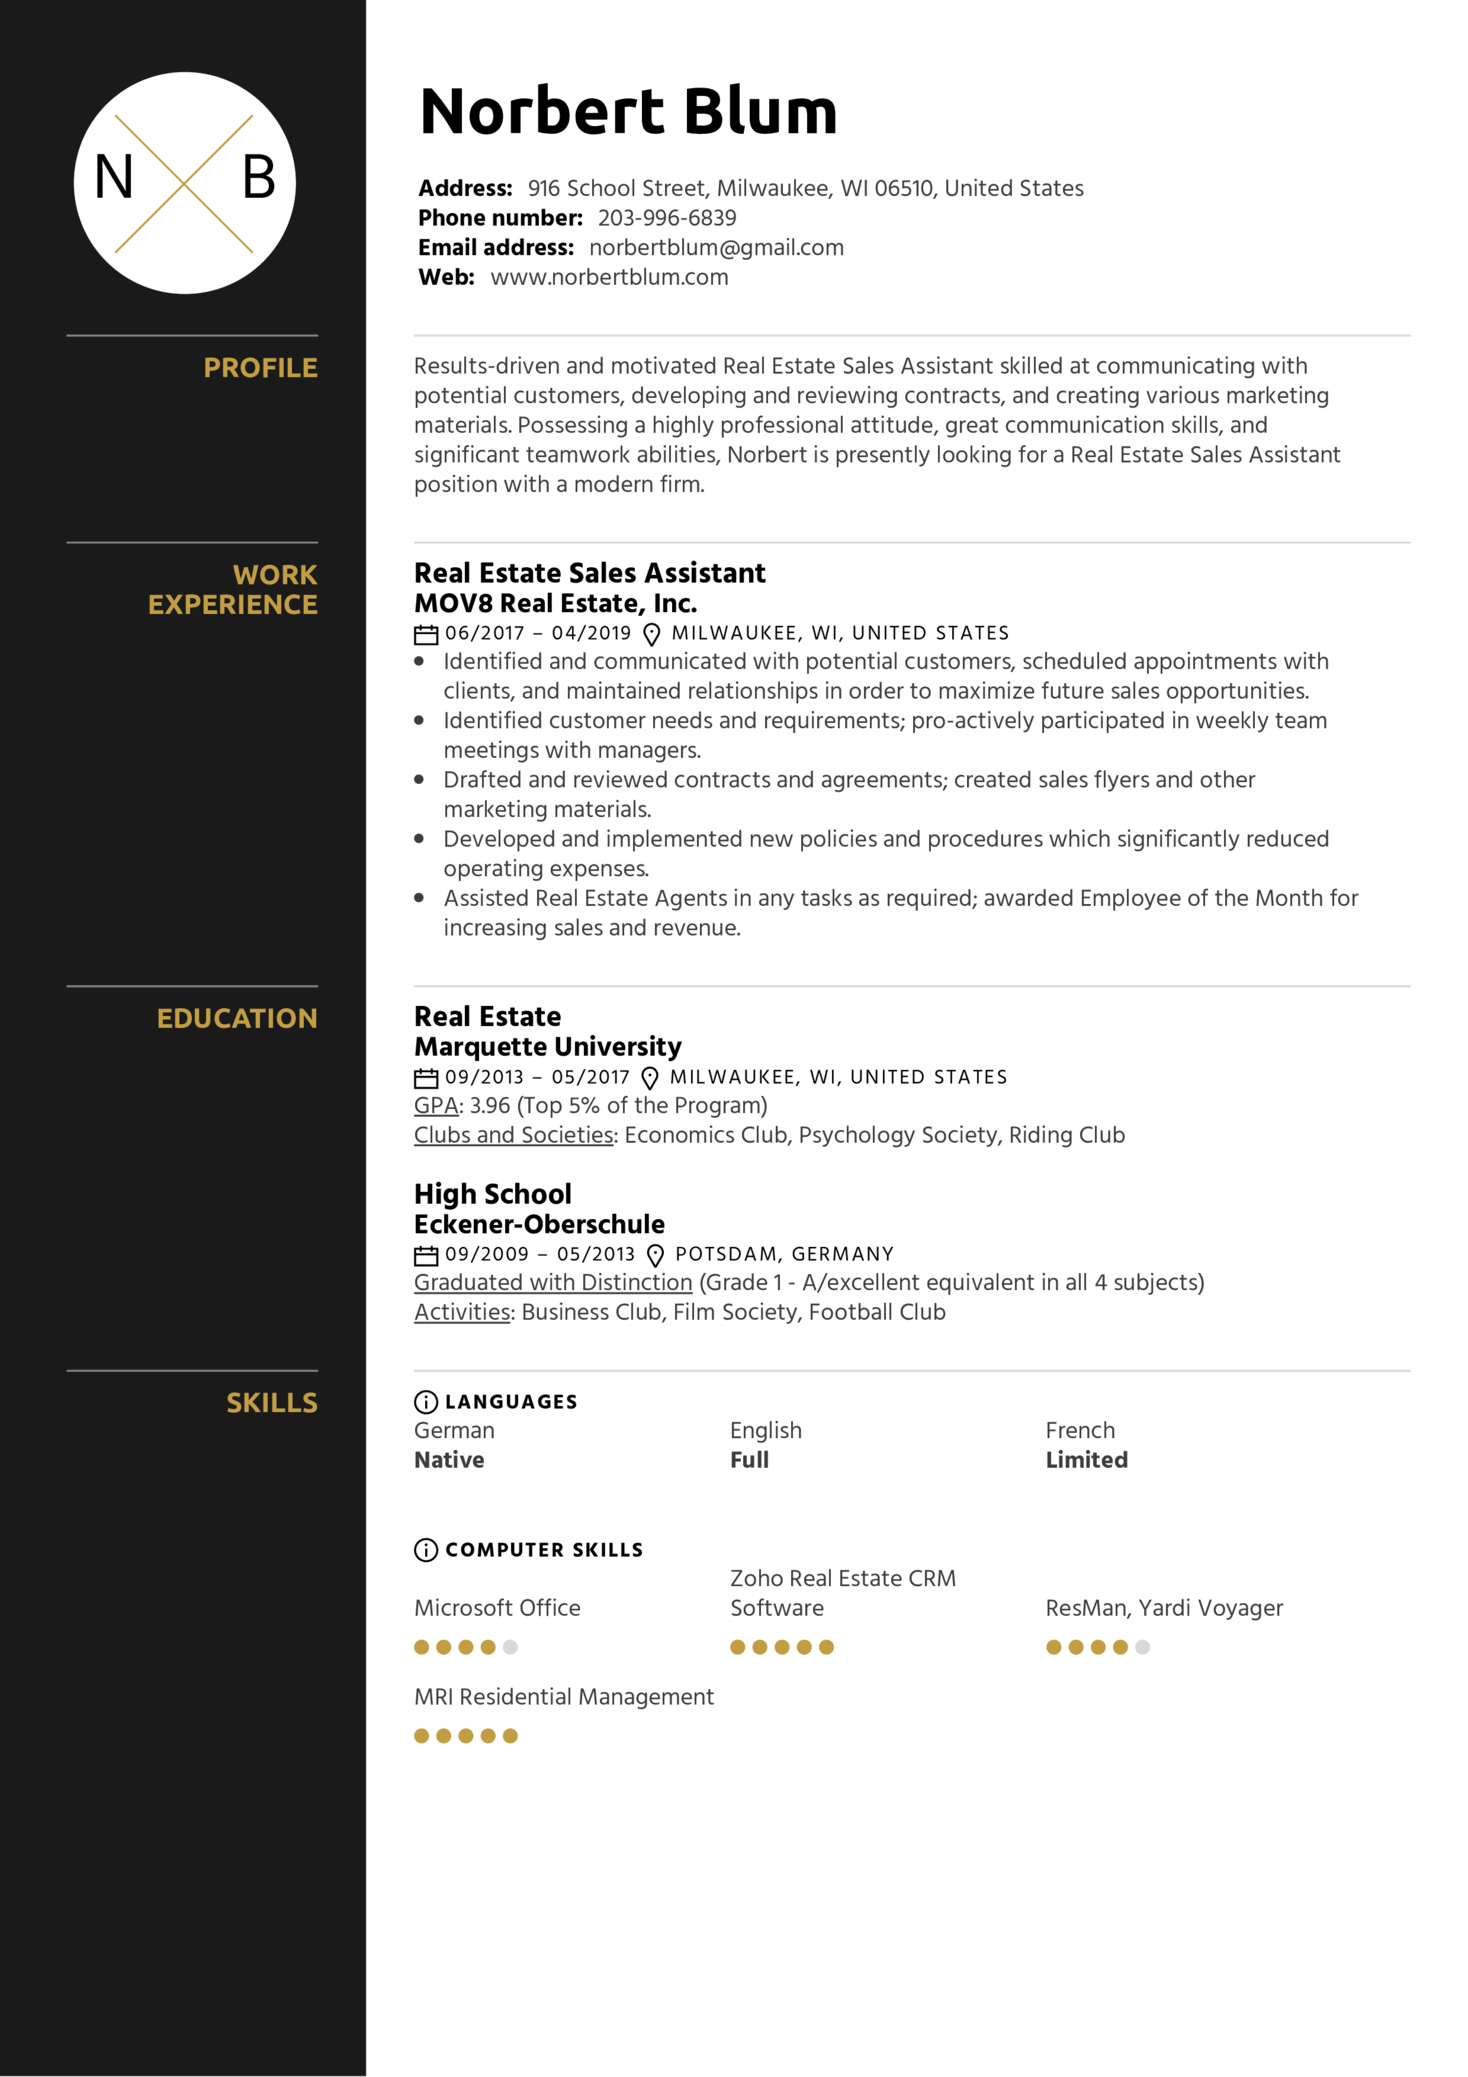 Real Estate Sales Assistant Resume Example (Part 1)